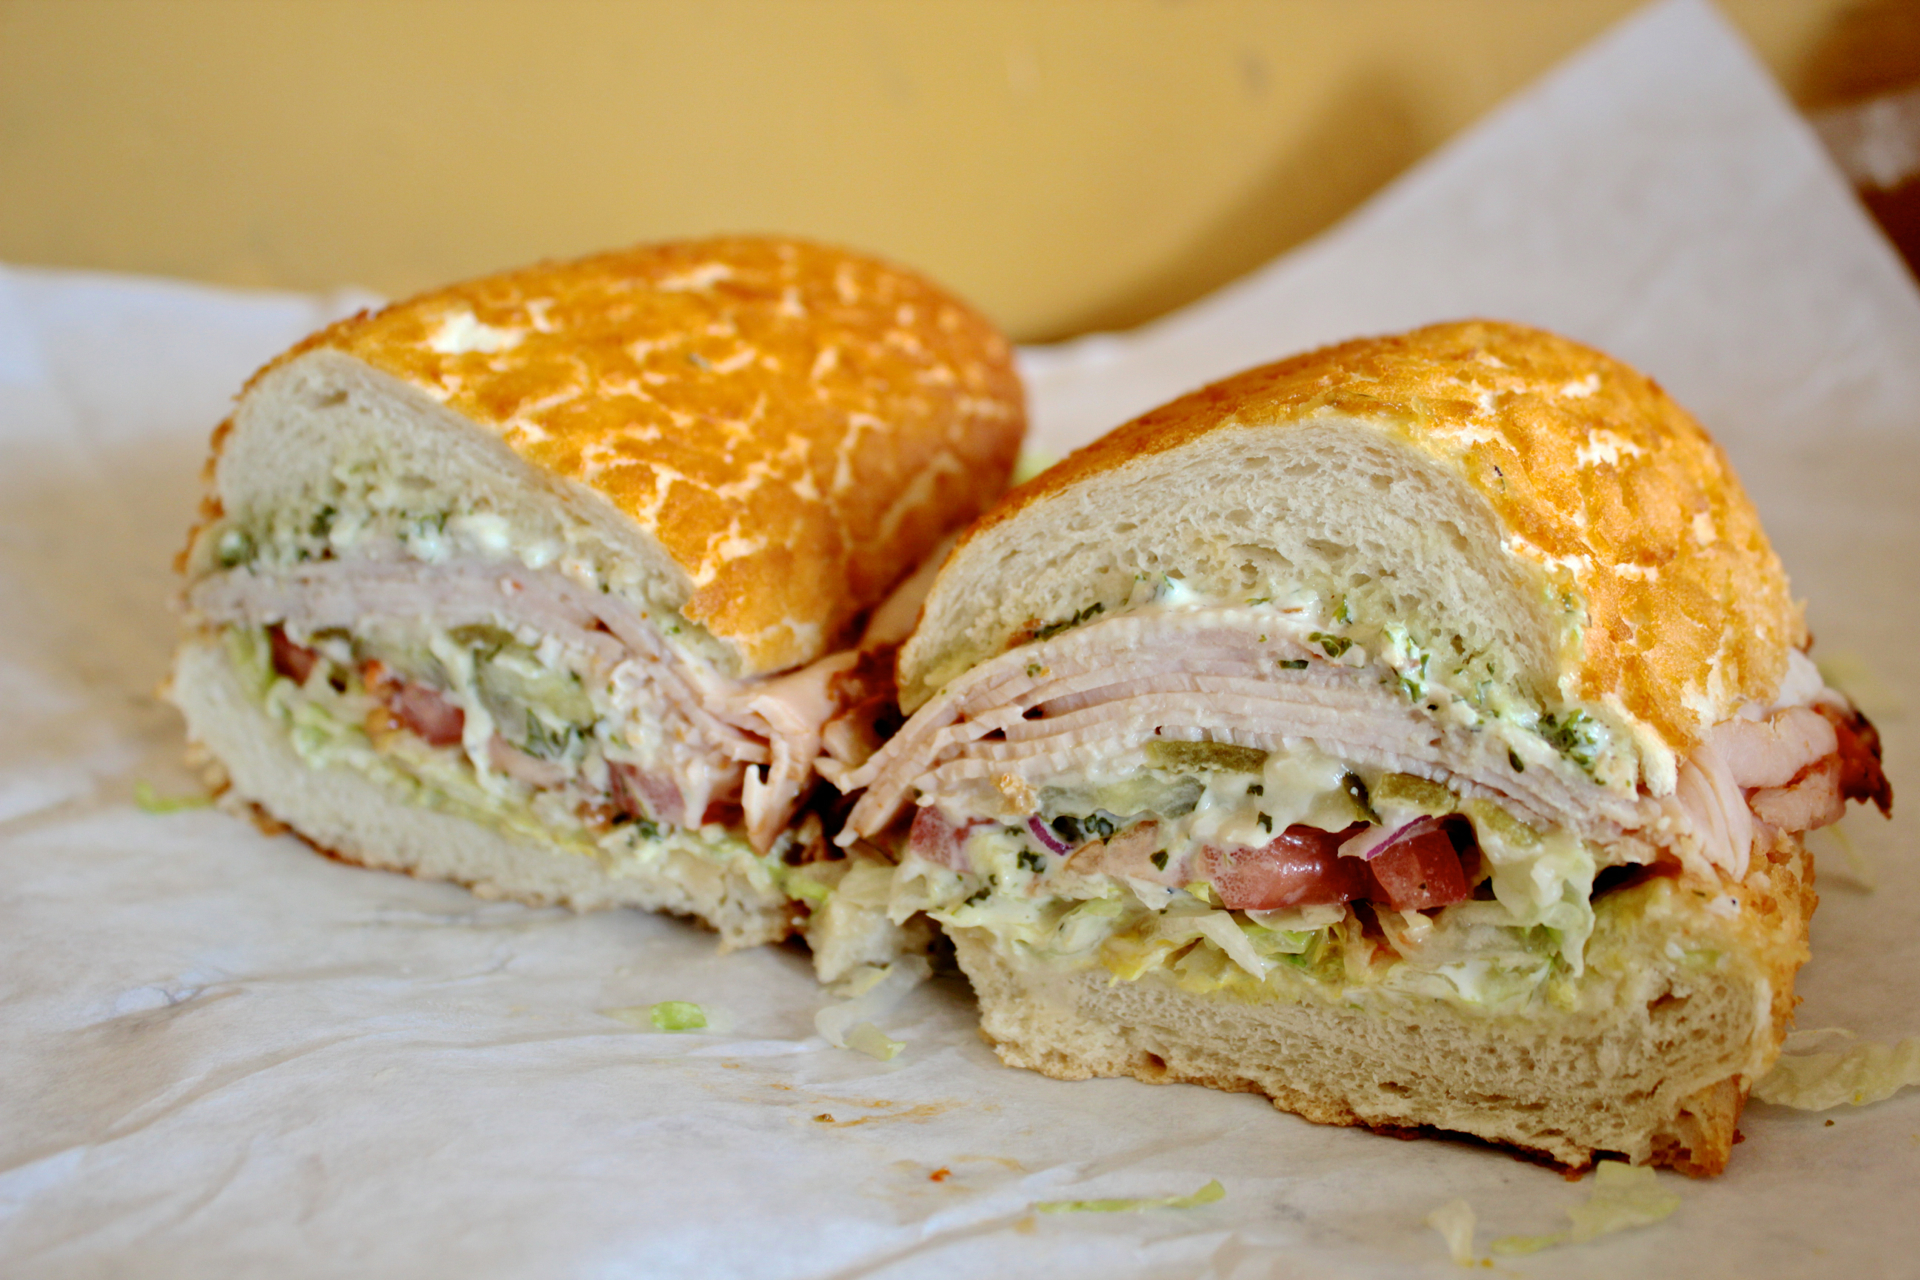 The Hot Bird features turkey, roasted green peppers, pepper jack cheese and caesar dressing.